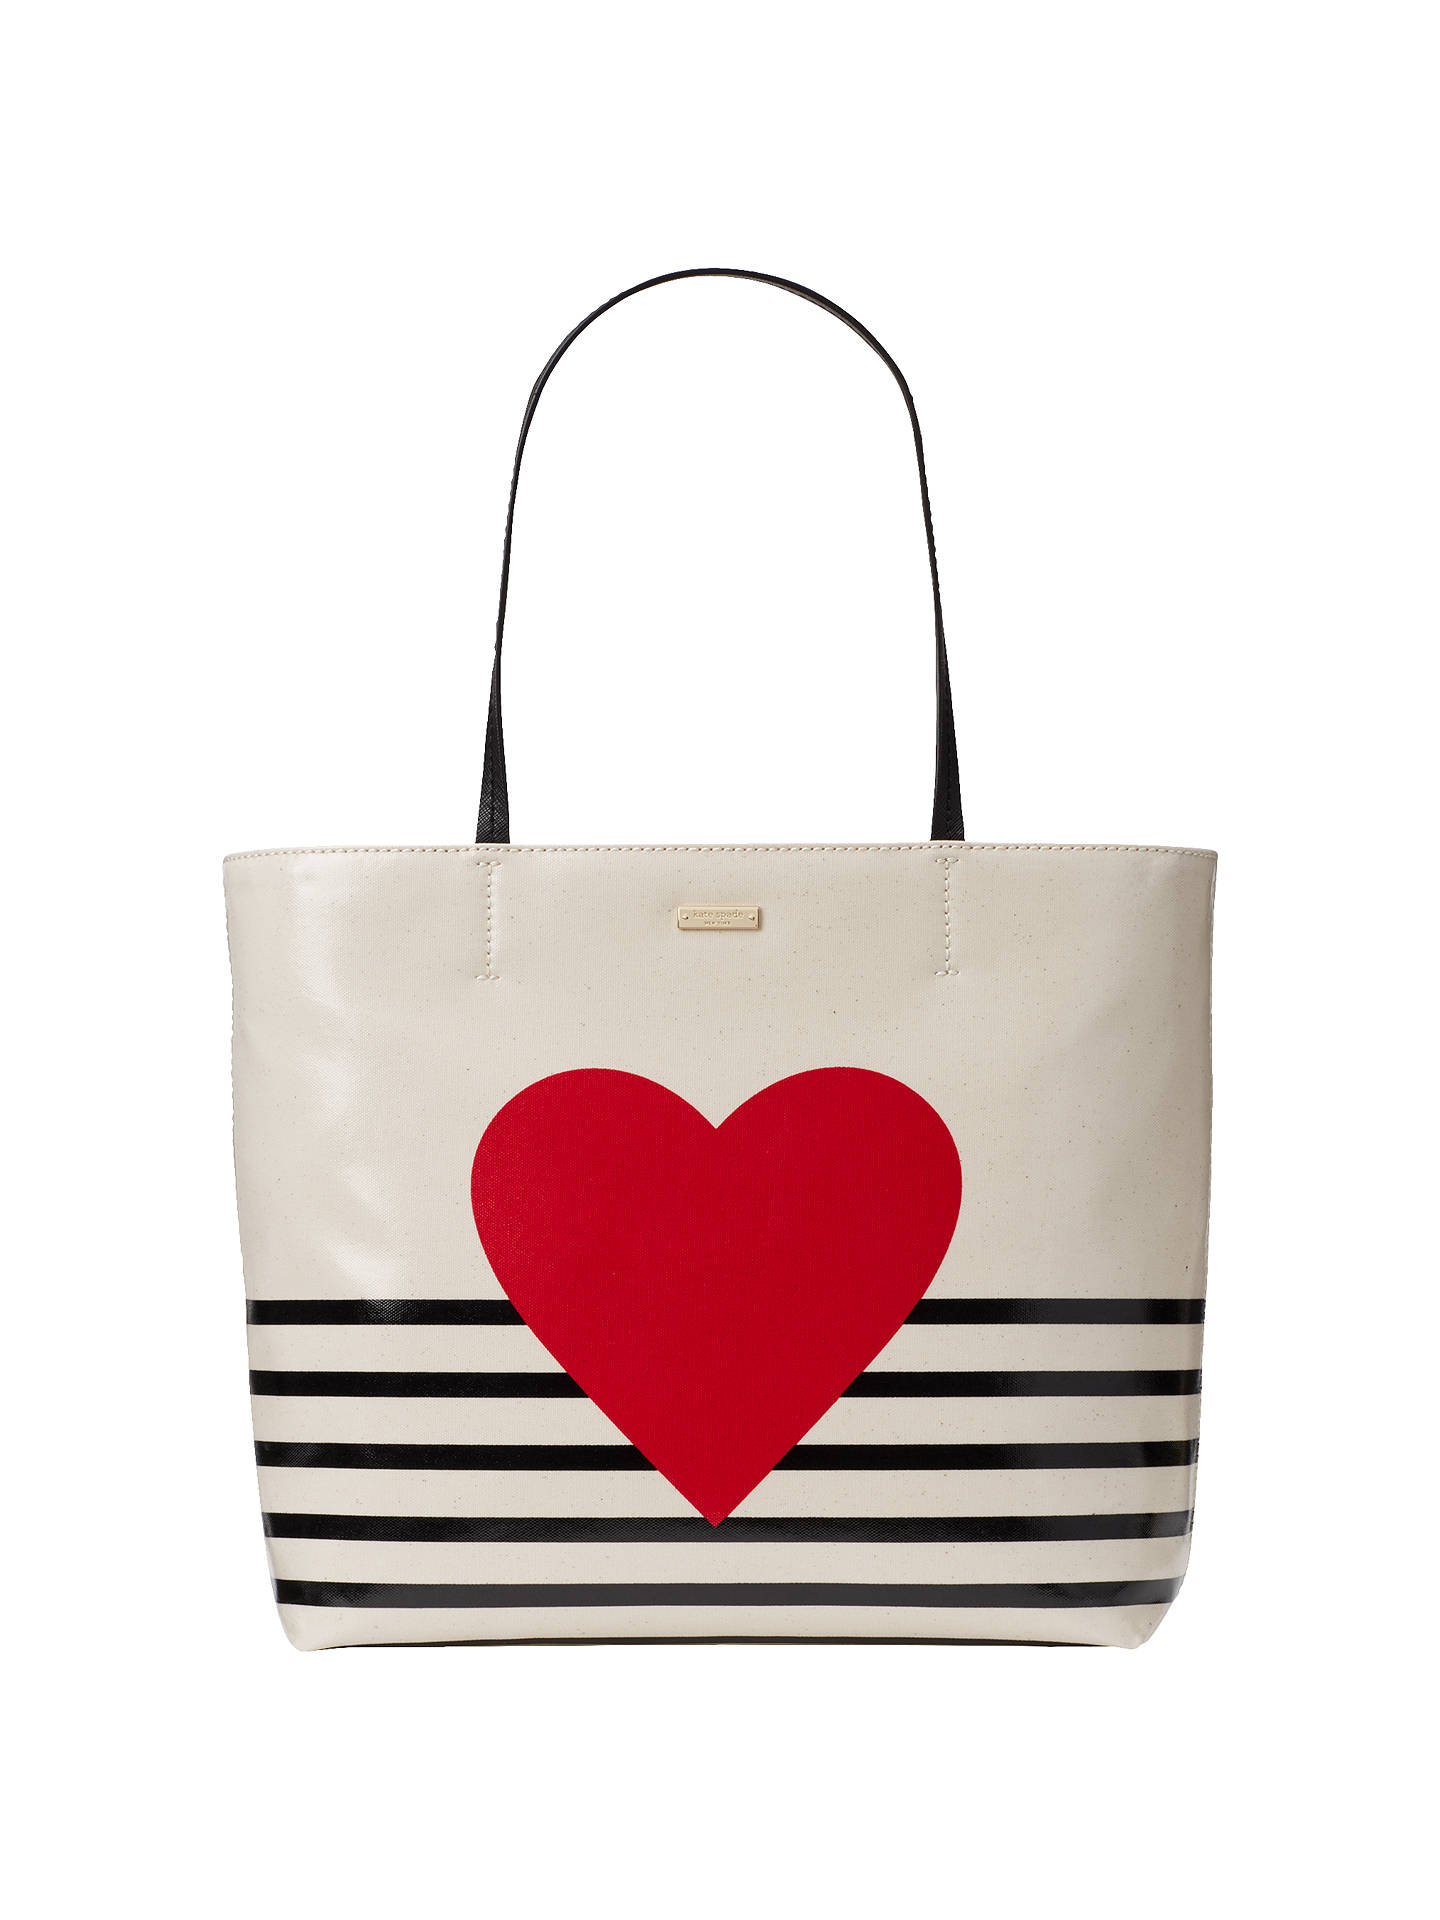 dc039d1e39 Buy kate spade new york Yours Truly Canvas Tote Bag